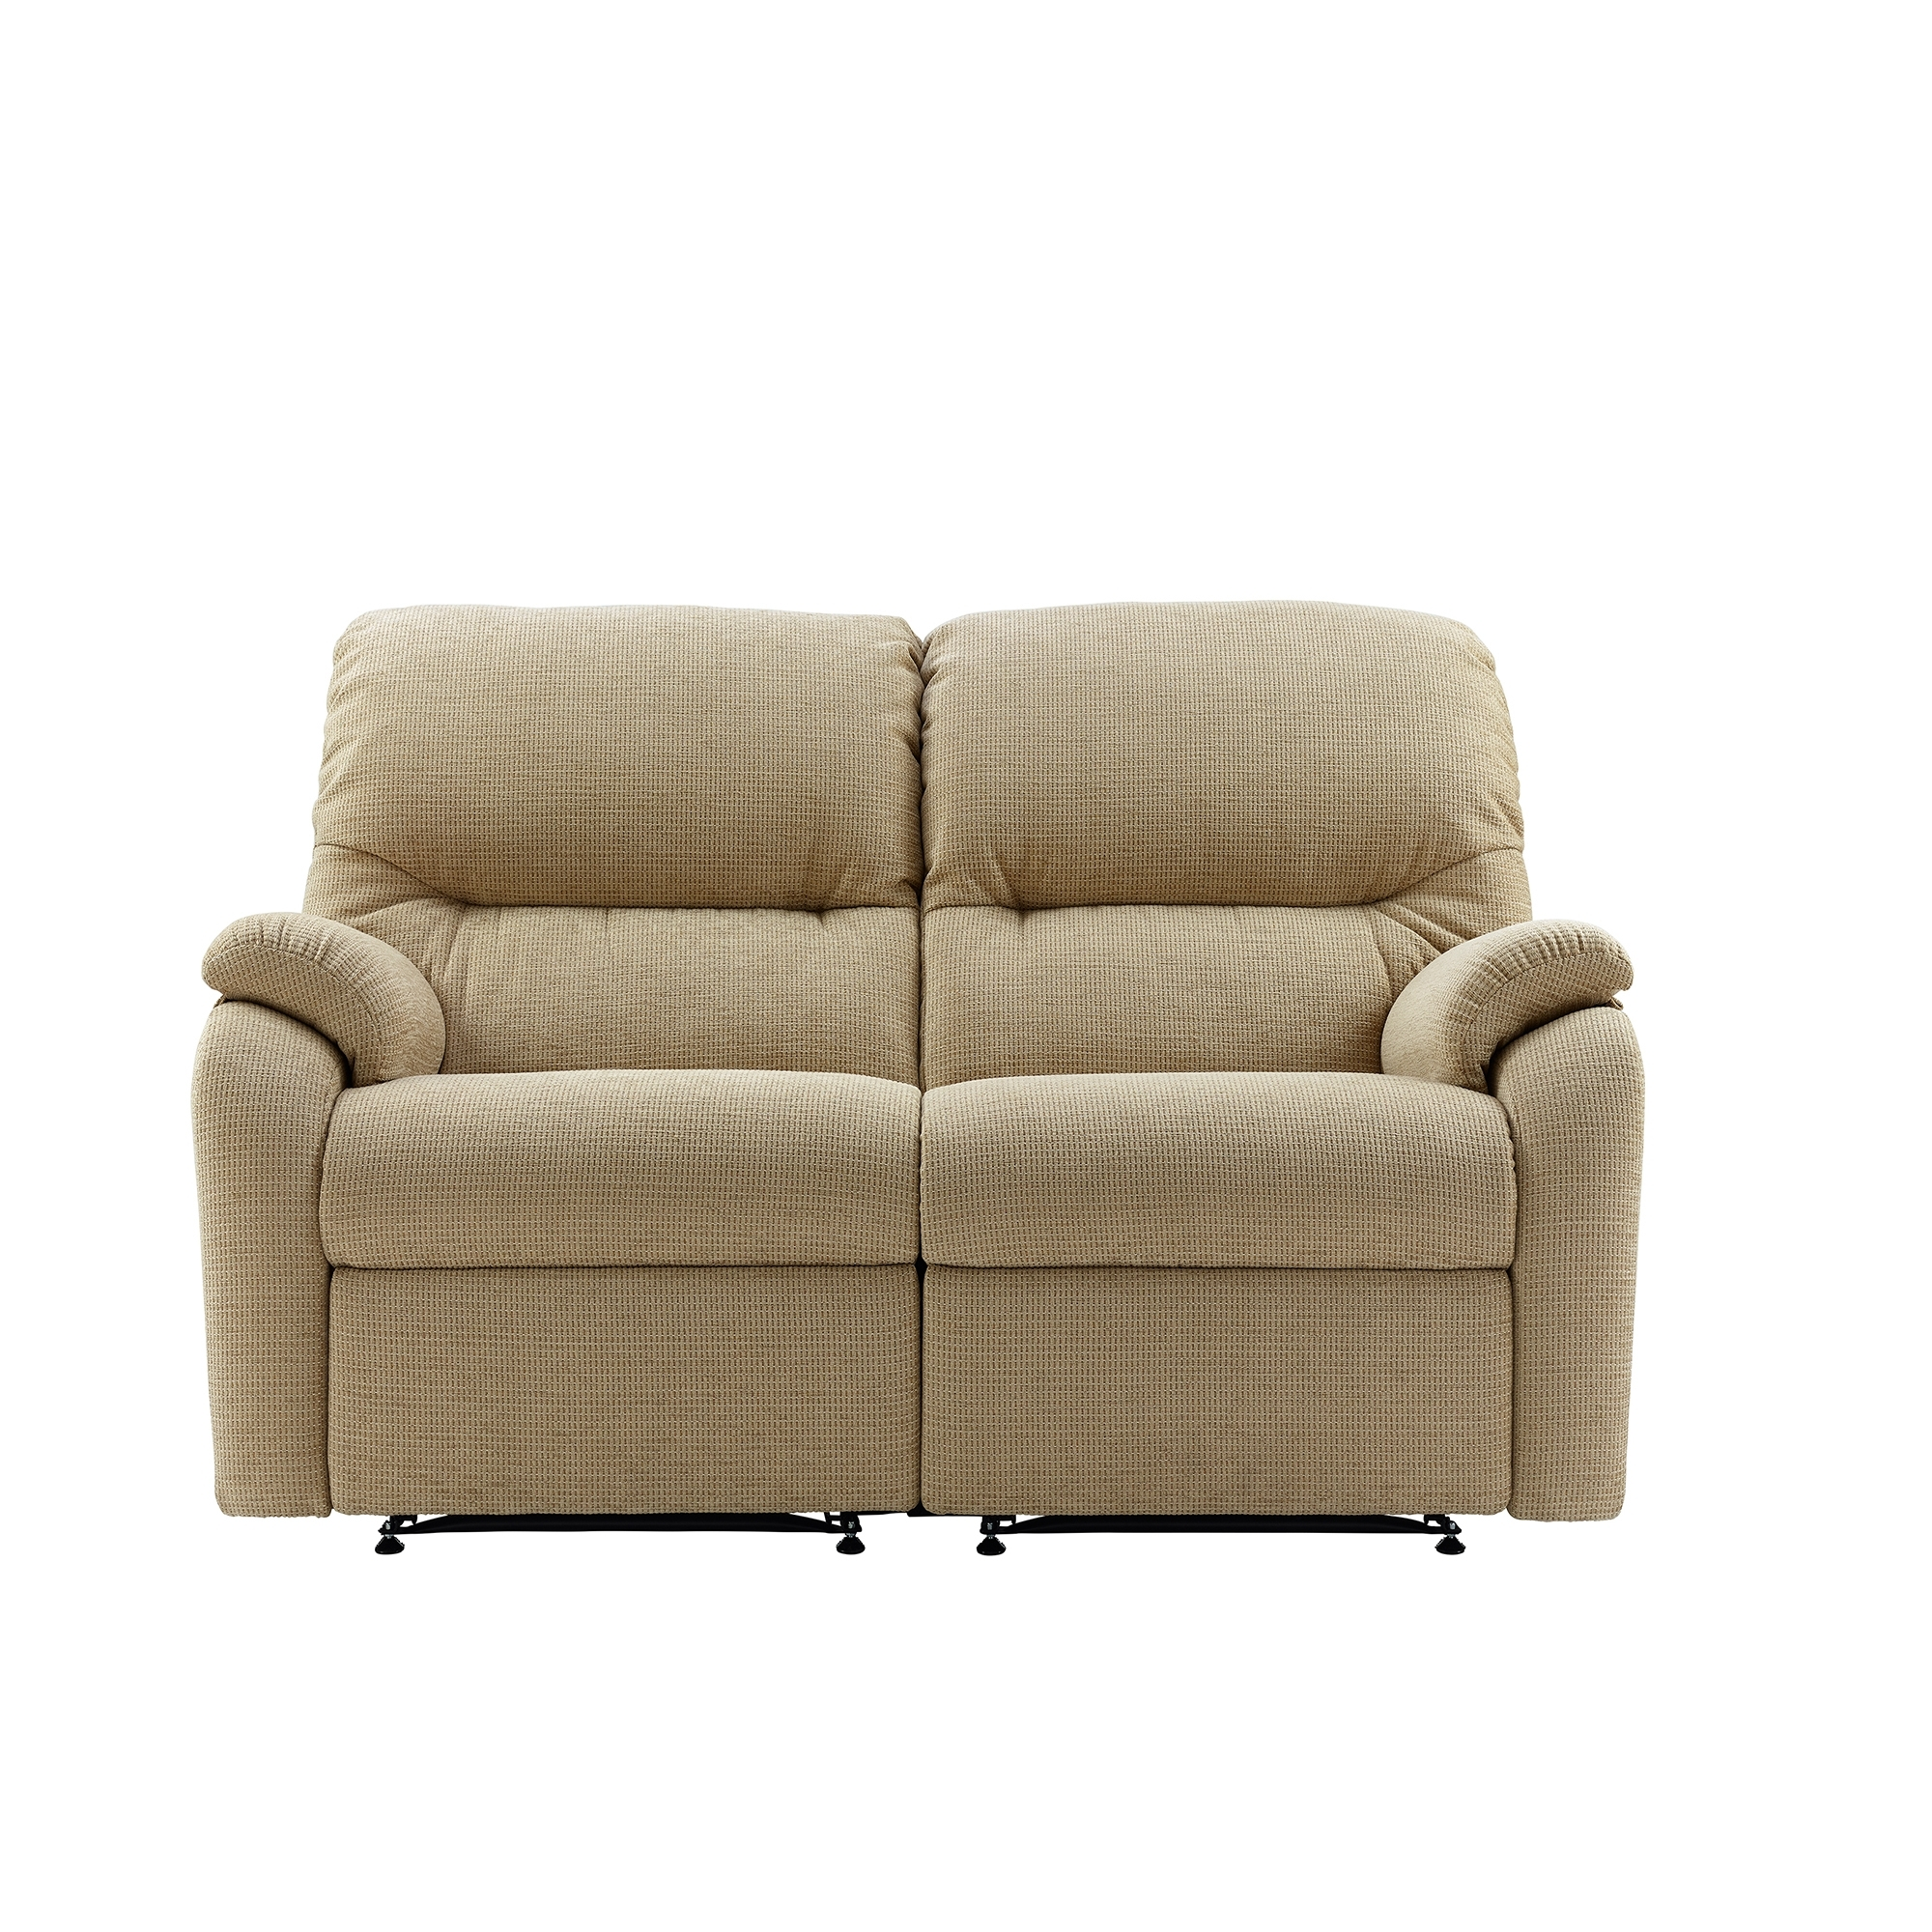 2 seater power recliner sofa pull out bed chair g plan mistral double all